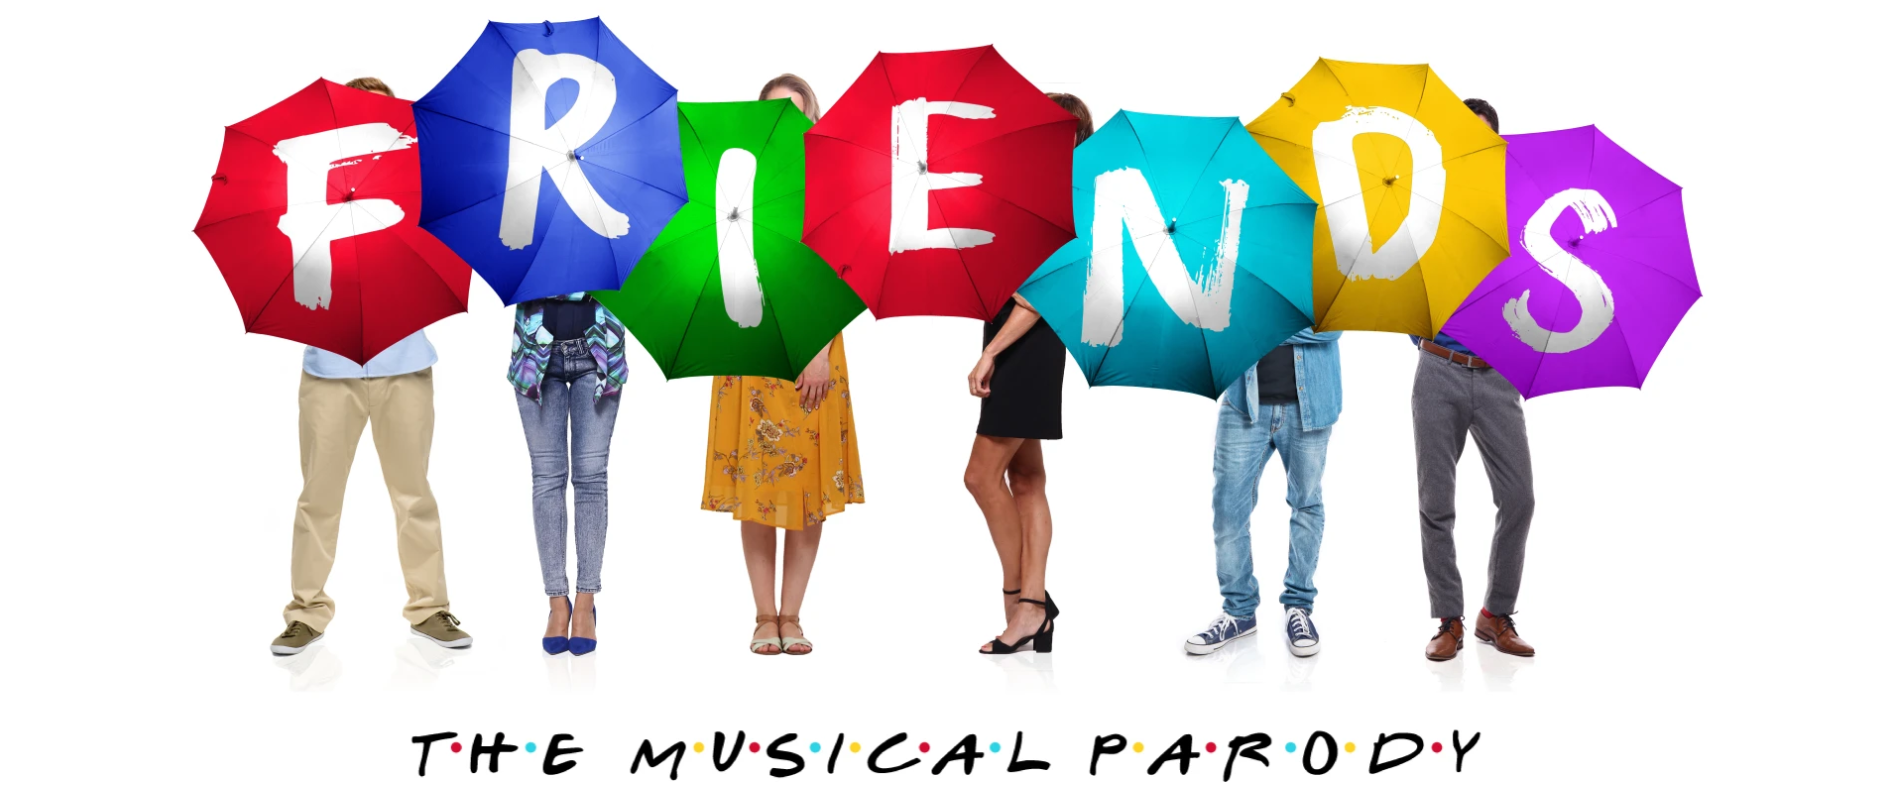 Friends parody logo